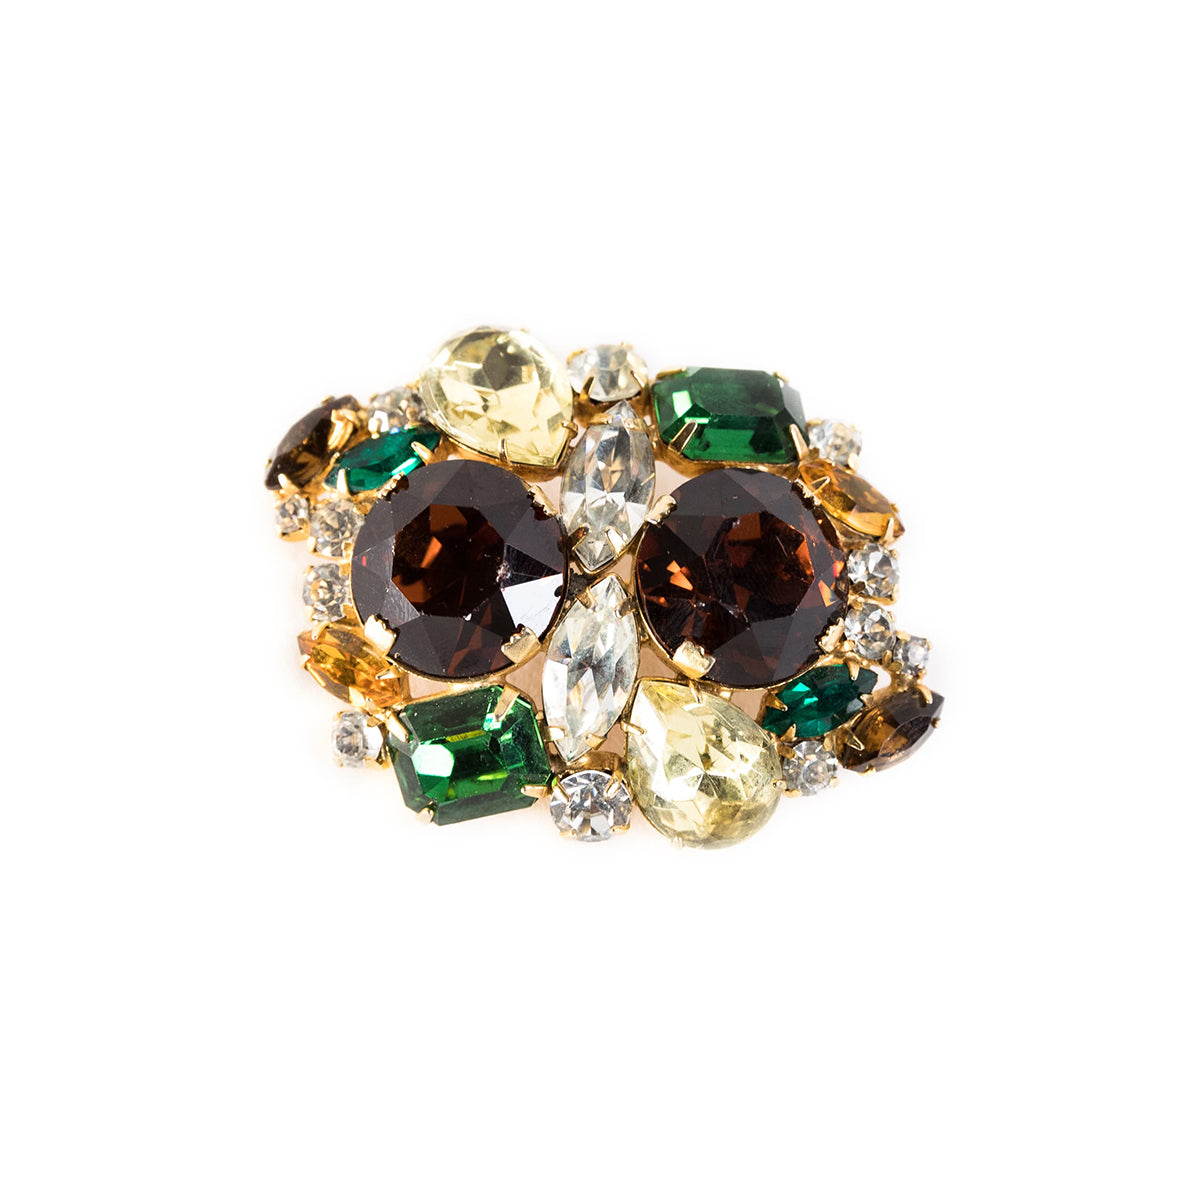 Vintage 50s Amber, Green & Clear Rhinestone Brooch, Gold Setting